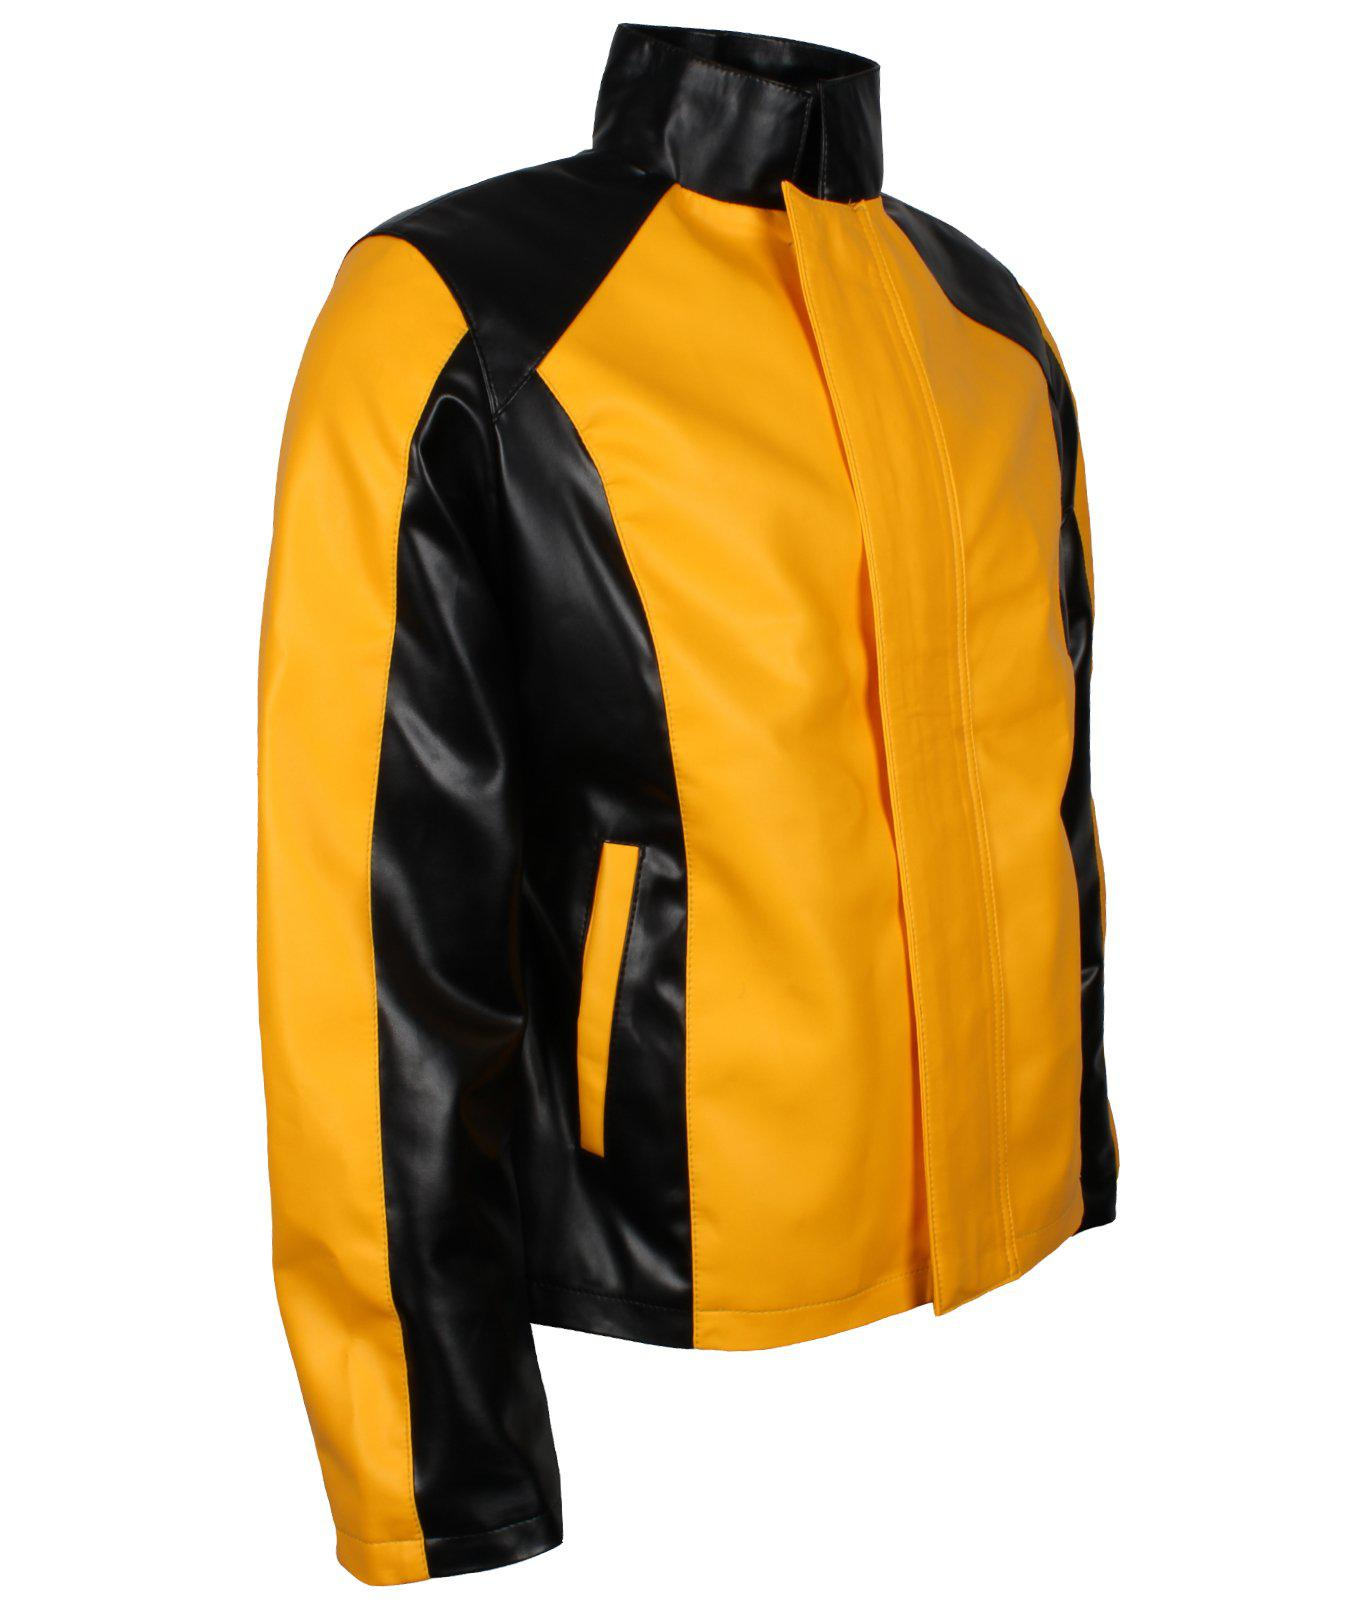 Infamous 2 Cole Macgrath Superhero Gaming Cosplay Costume Faux PU Black and Yellow  Leather Biker Jacket